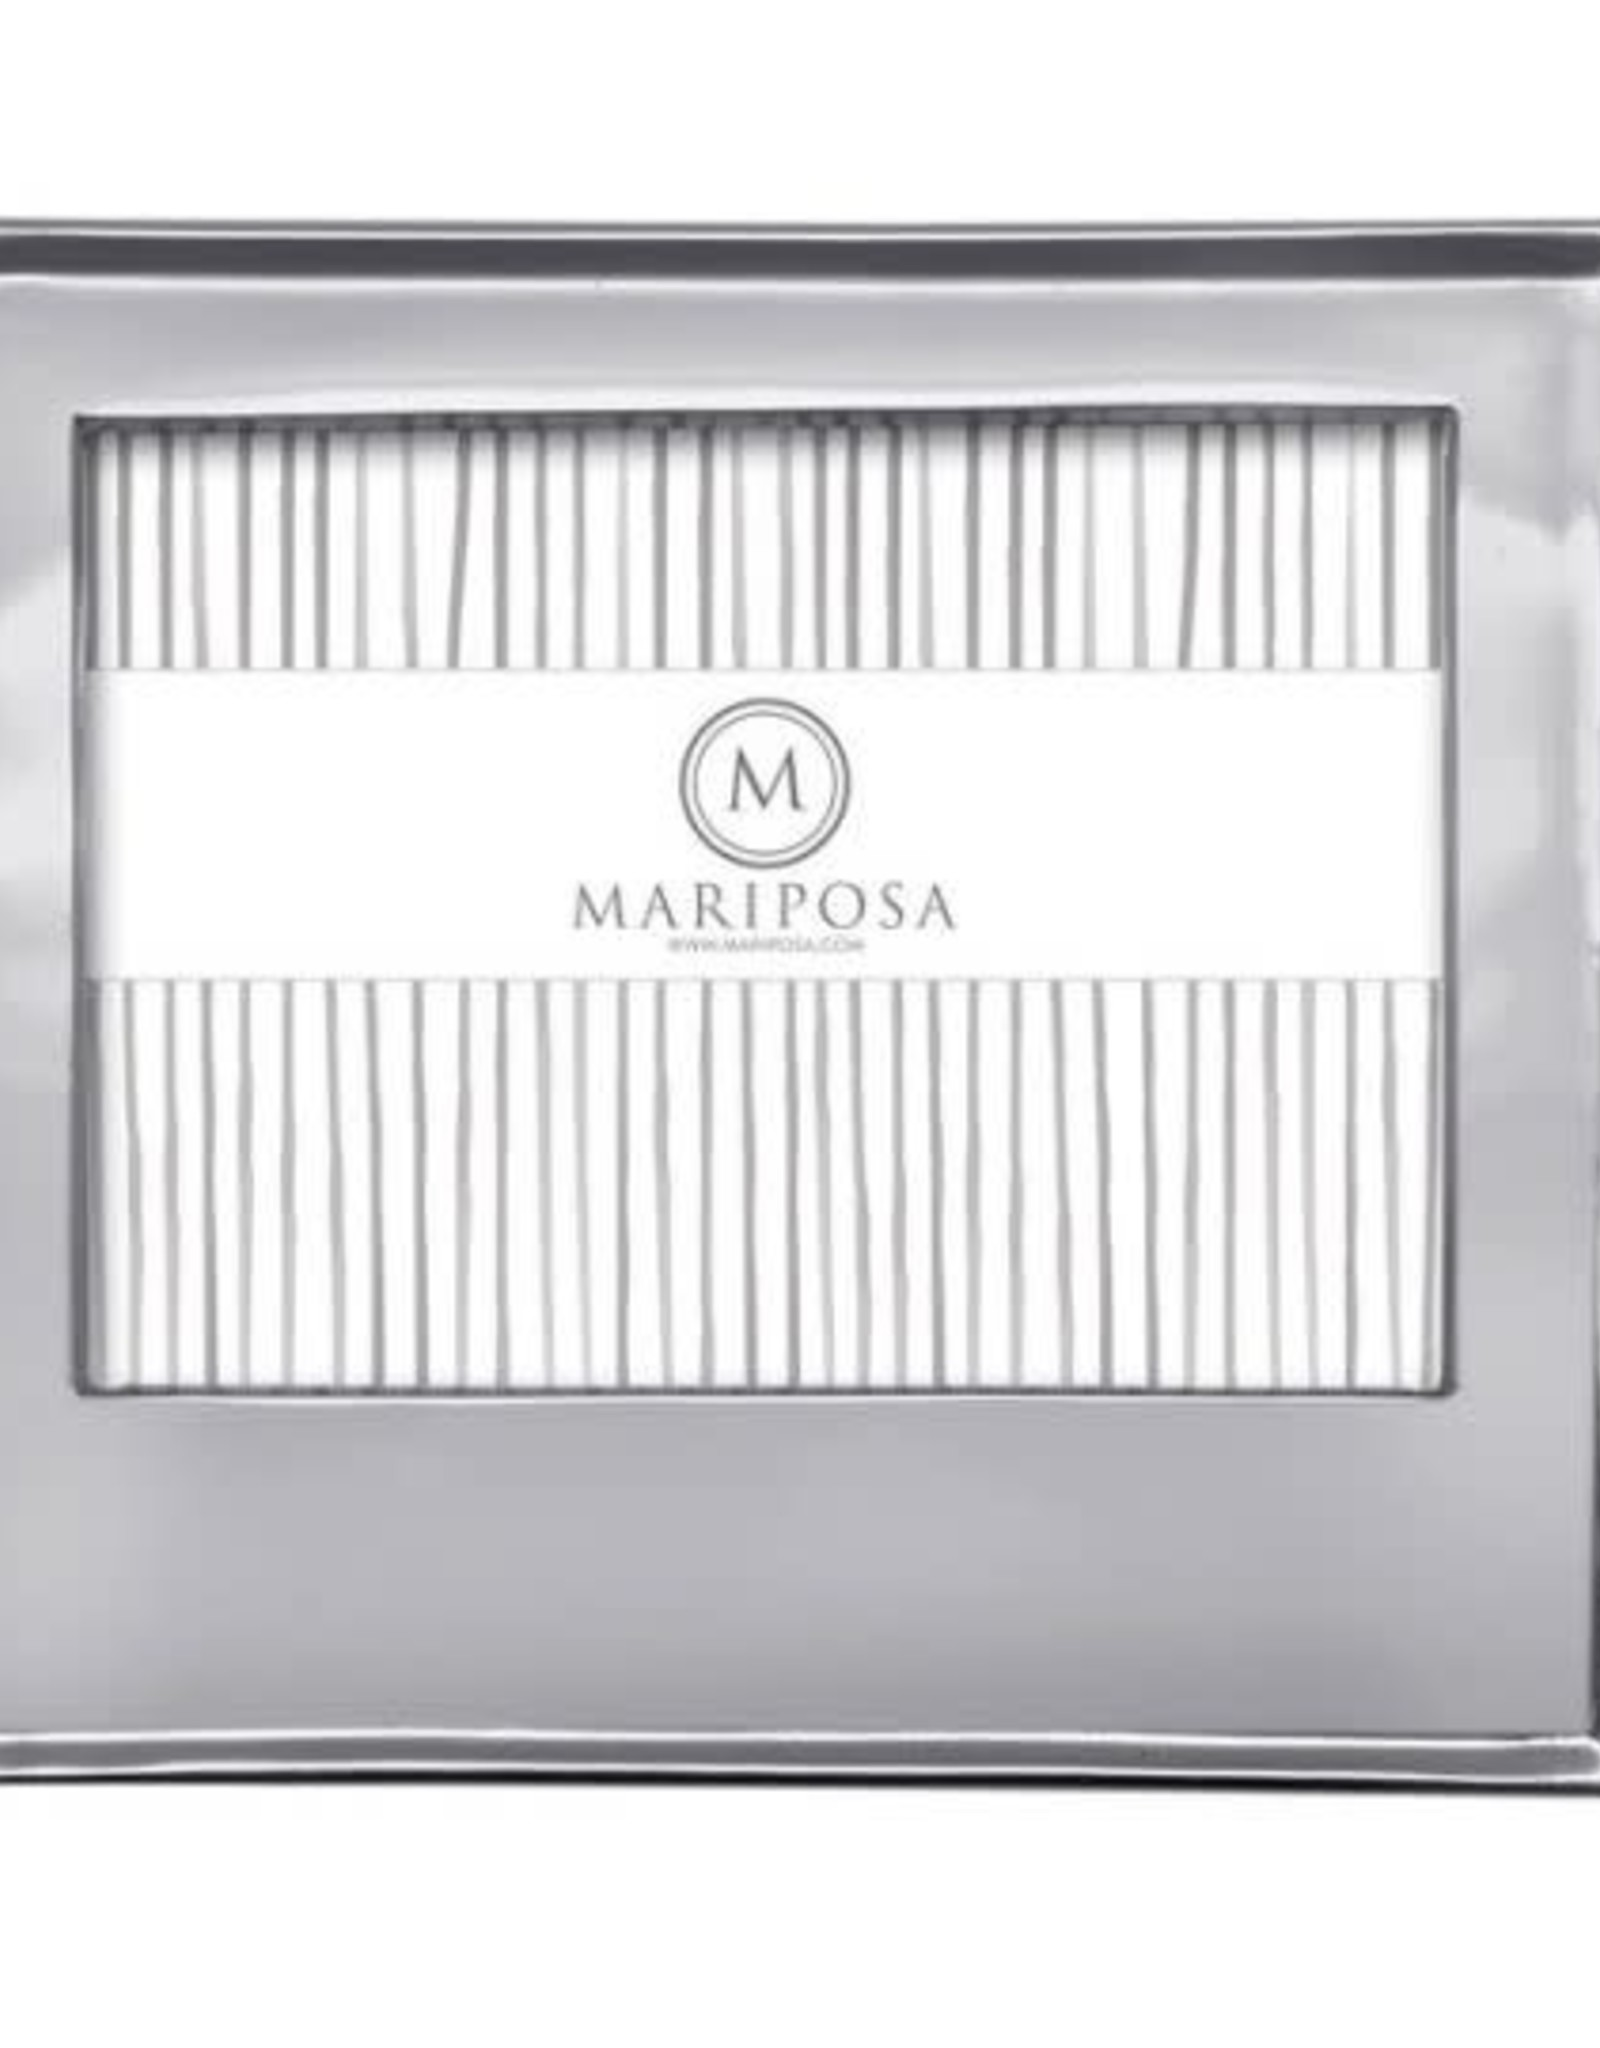 Mariposa Signature 5x7 Statement Frame